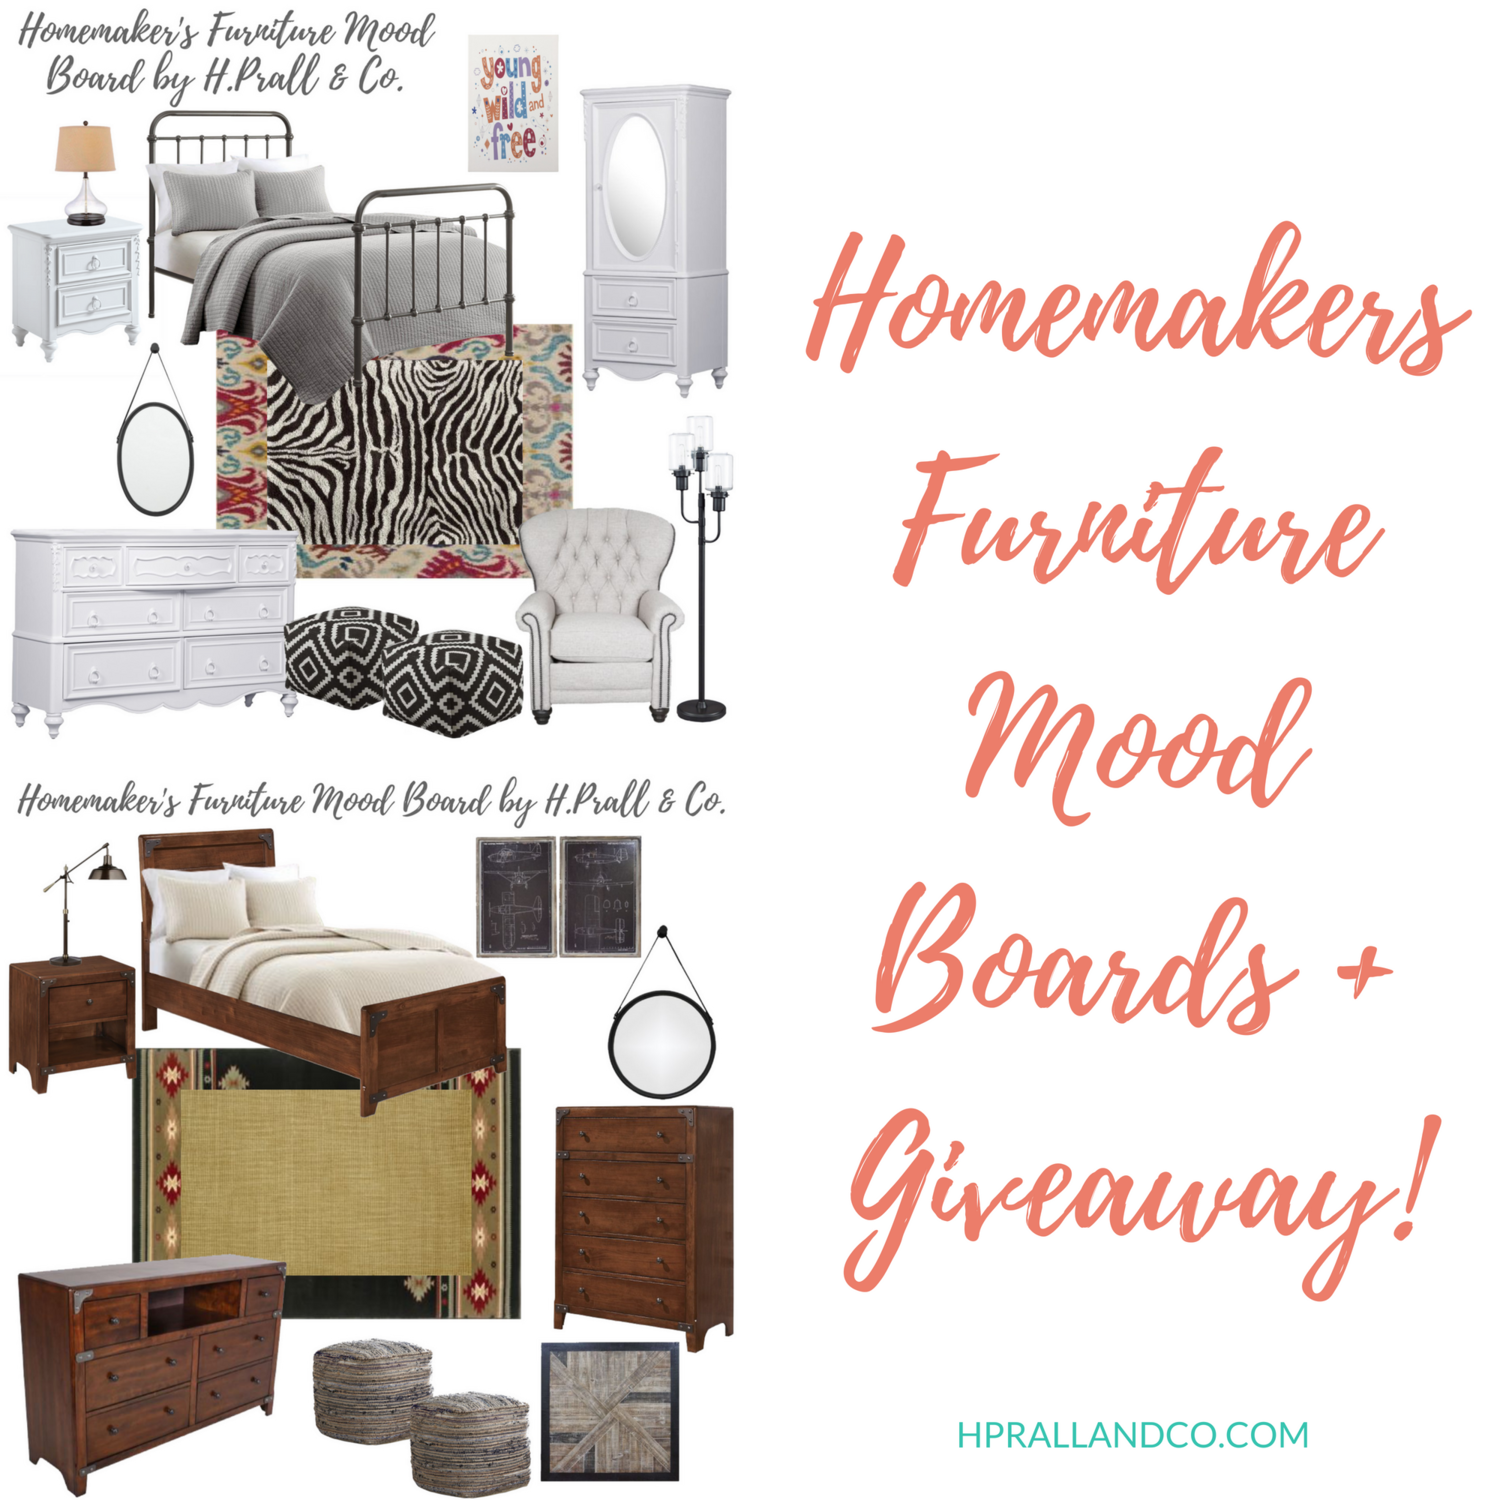 Homemakers Furniture Mood Boards Giveaway H Prall Co